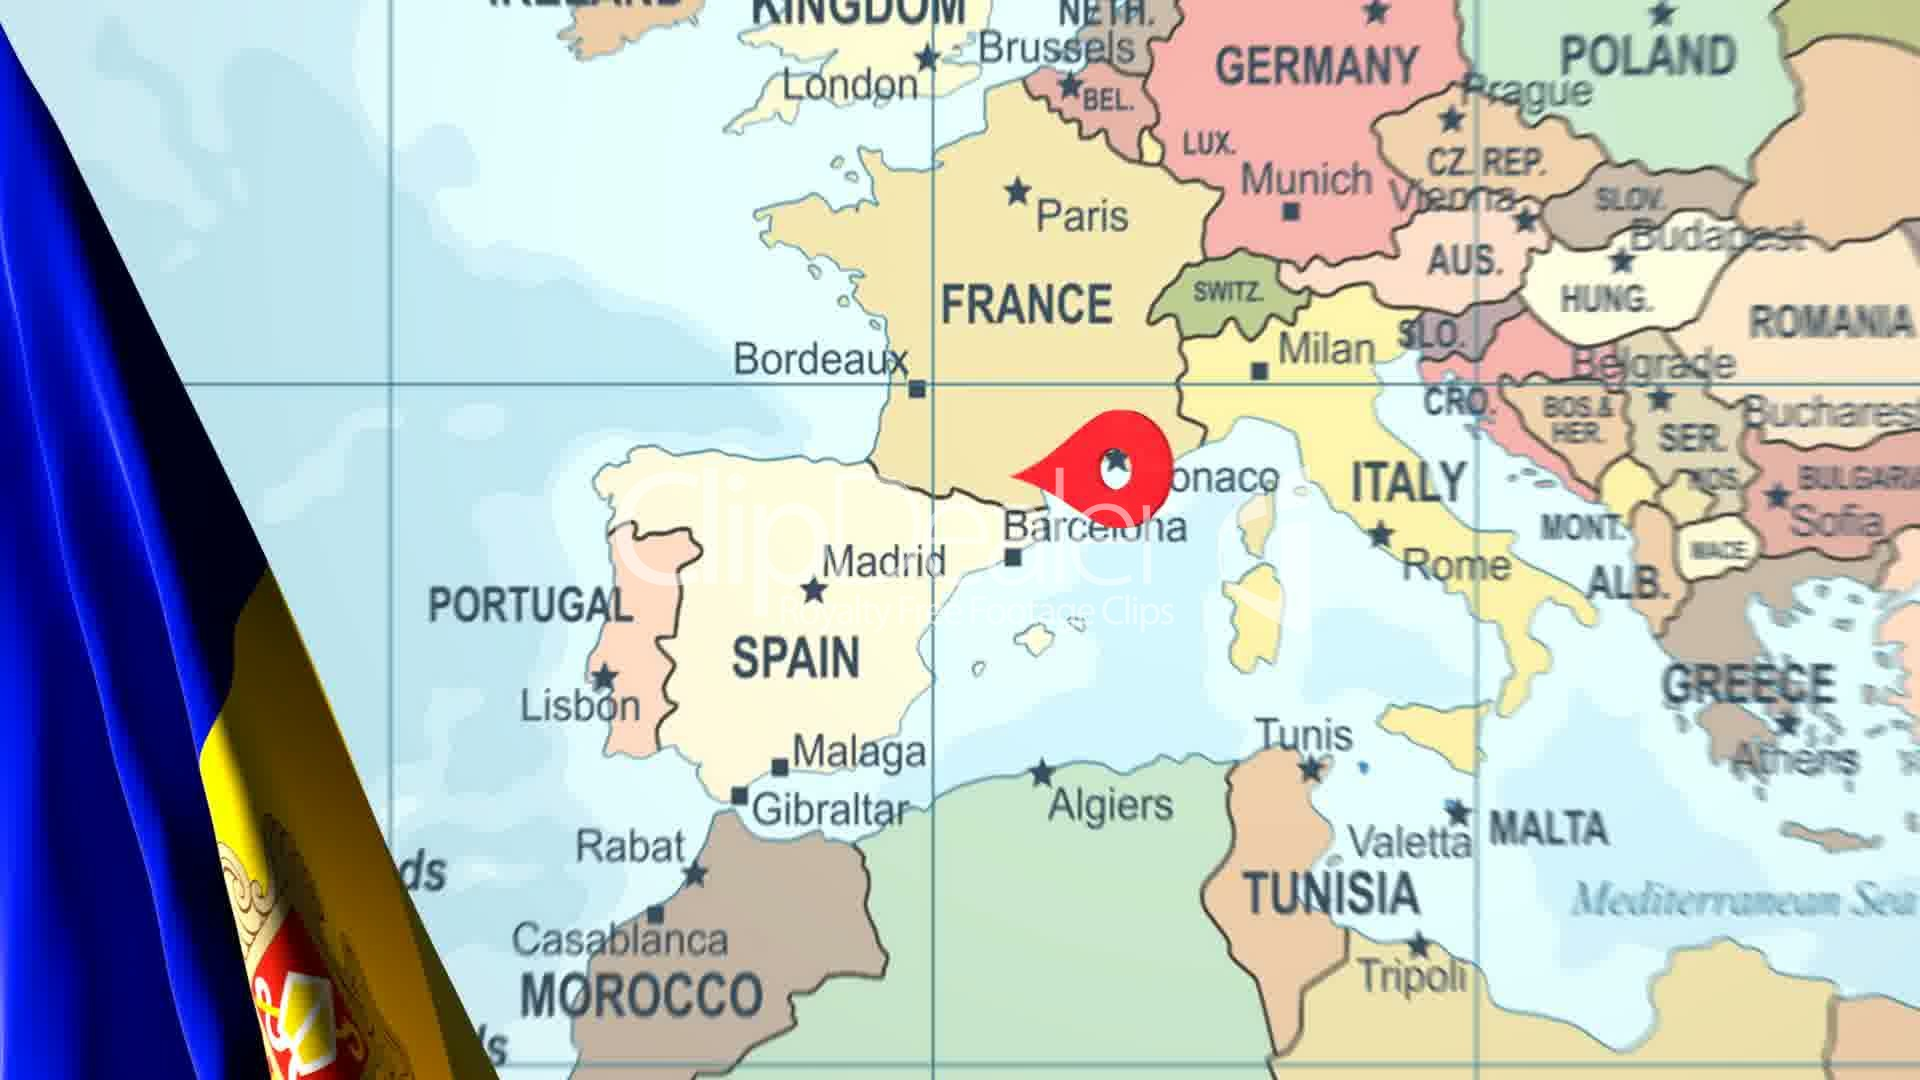 Animated Flag Of Andorra With A Pin On A Worldmap Royalty Free